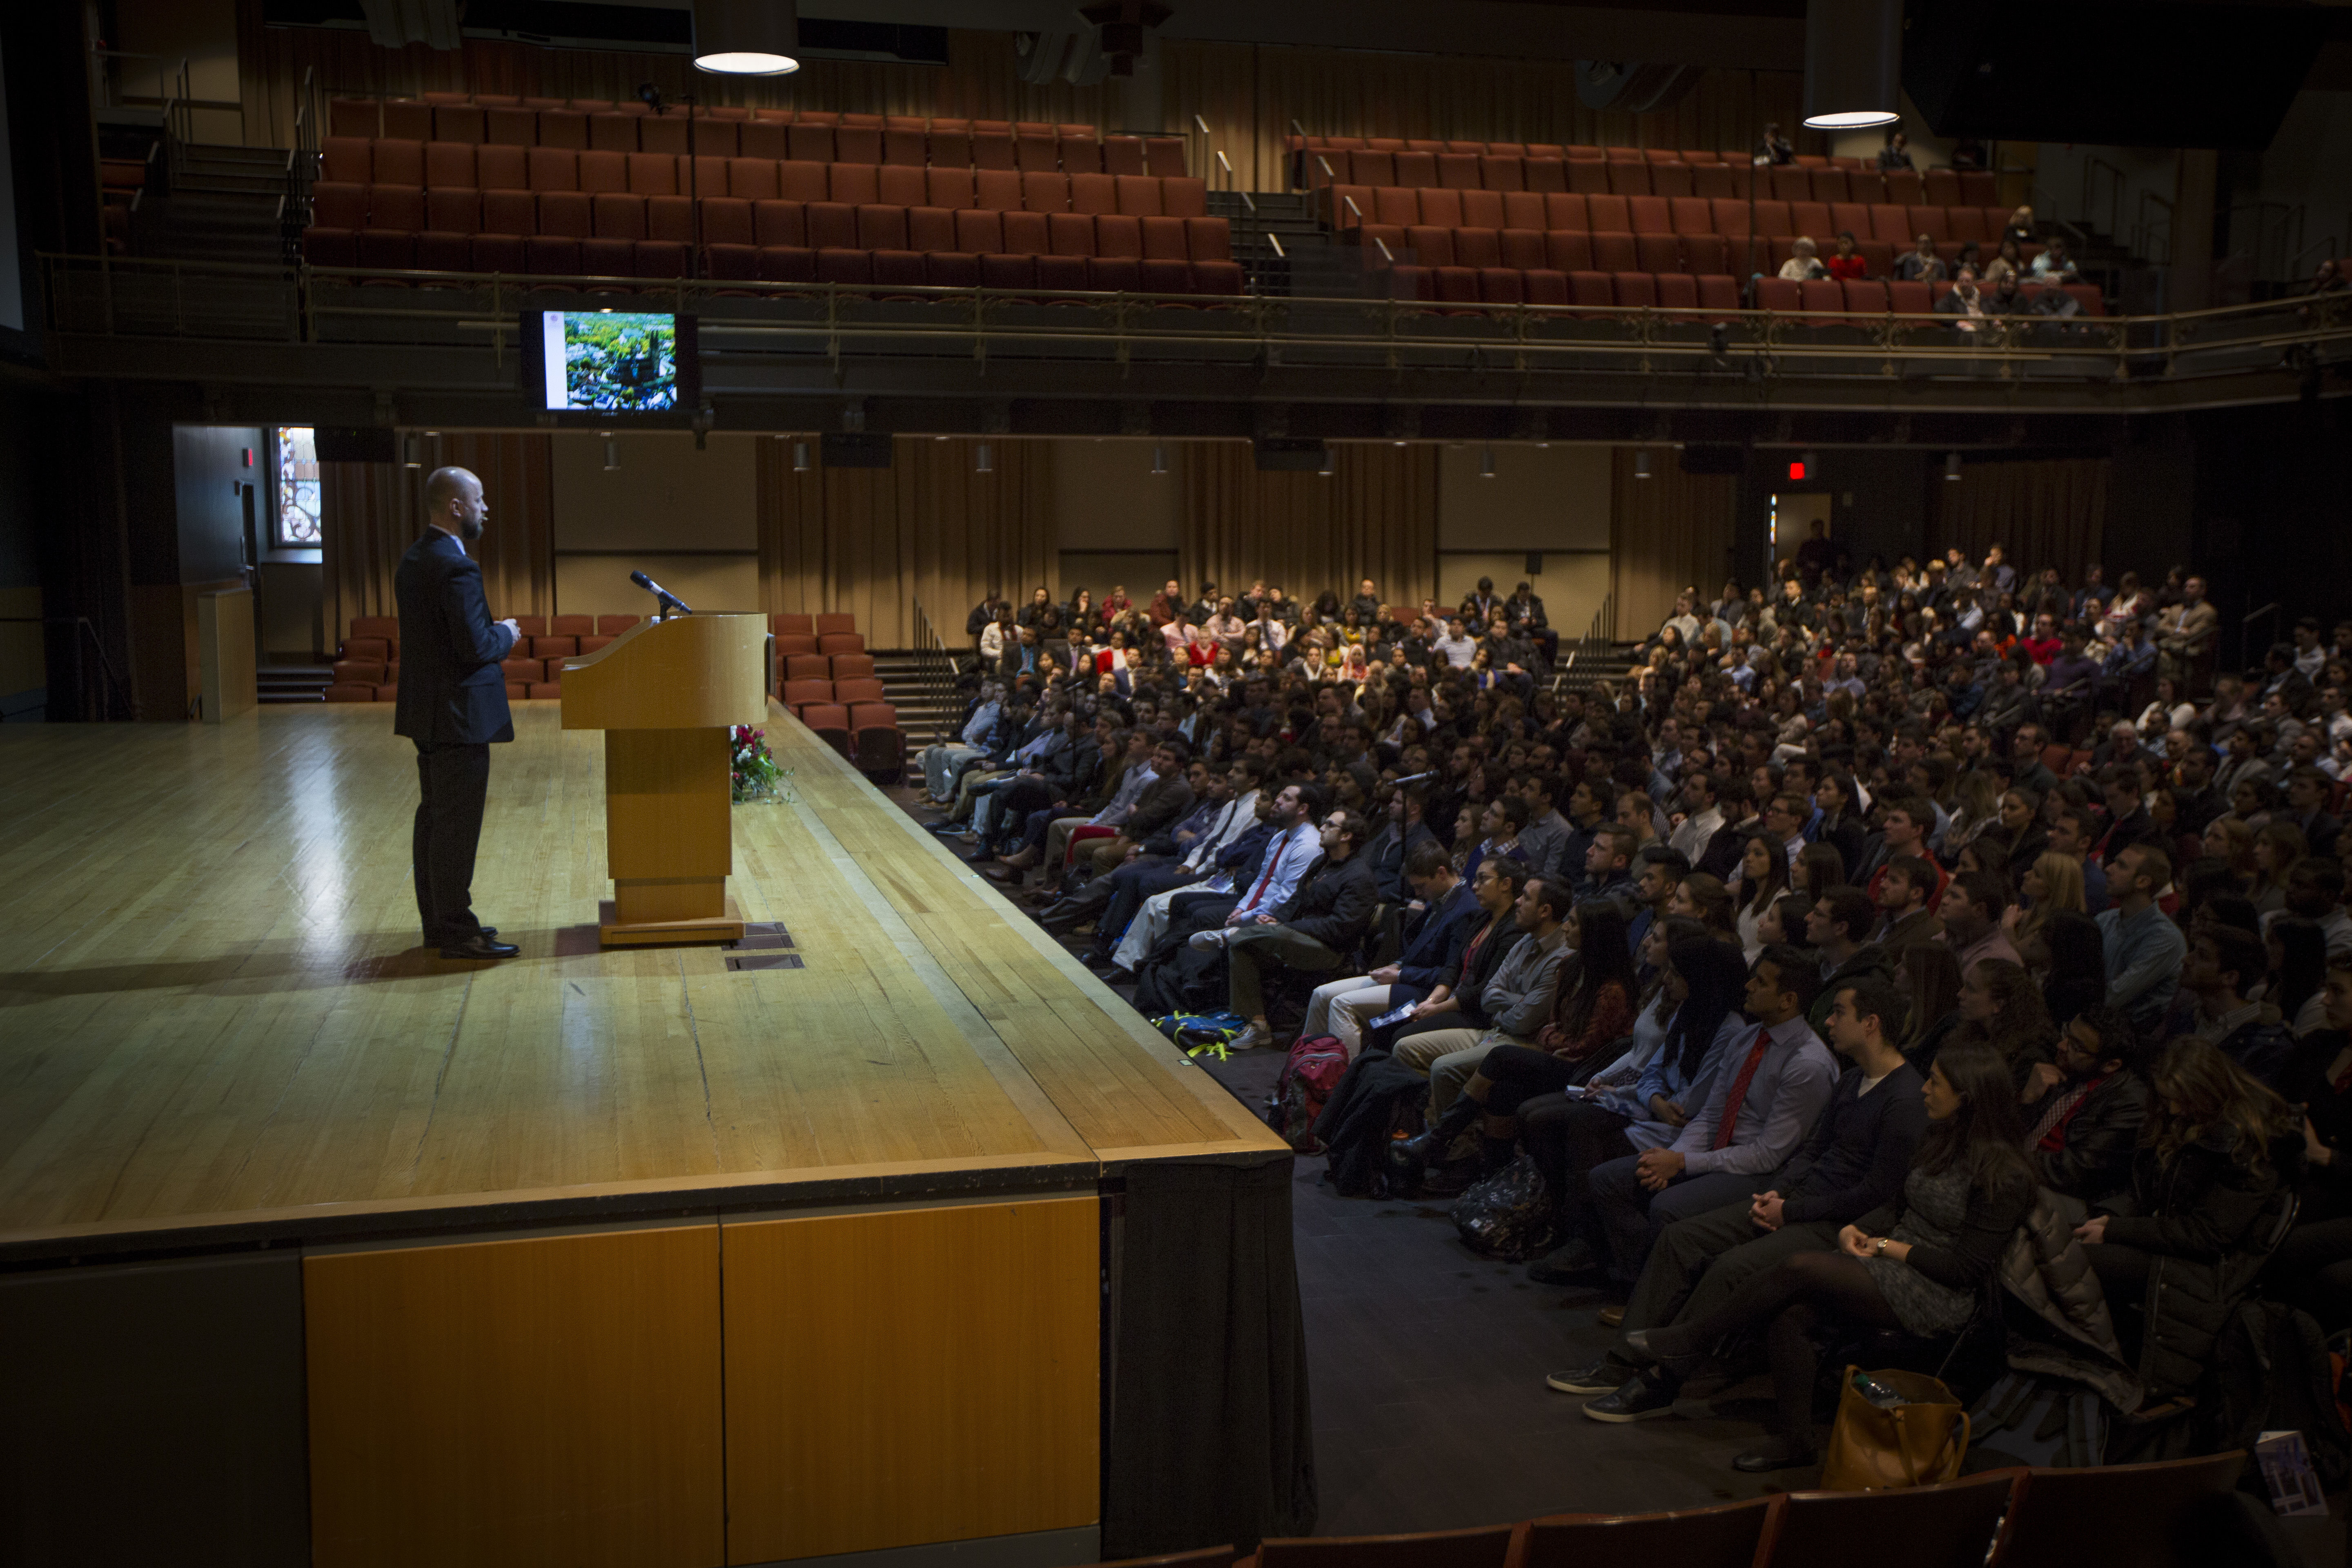 An on-stage speaker addresses the audience during a Research Day event.